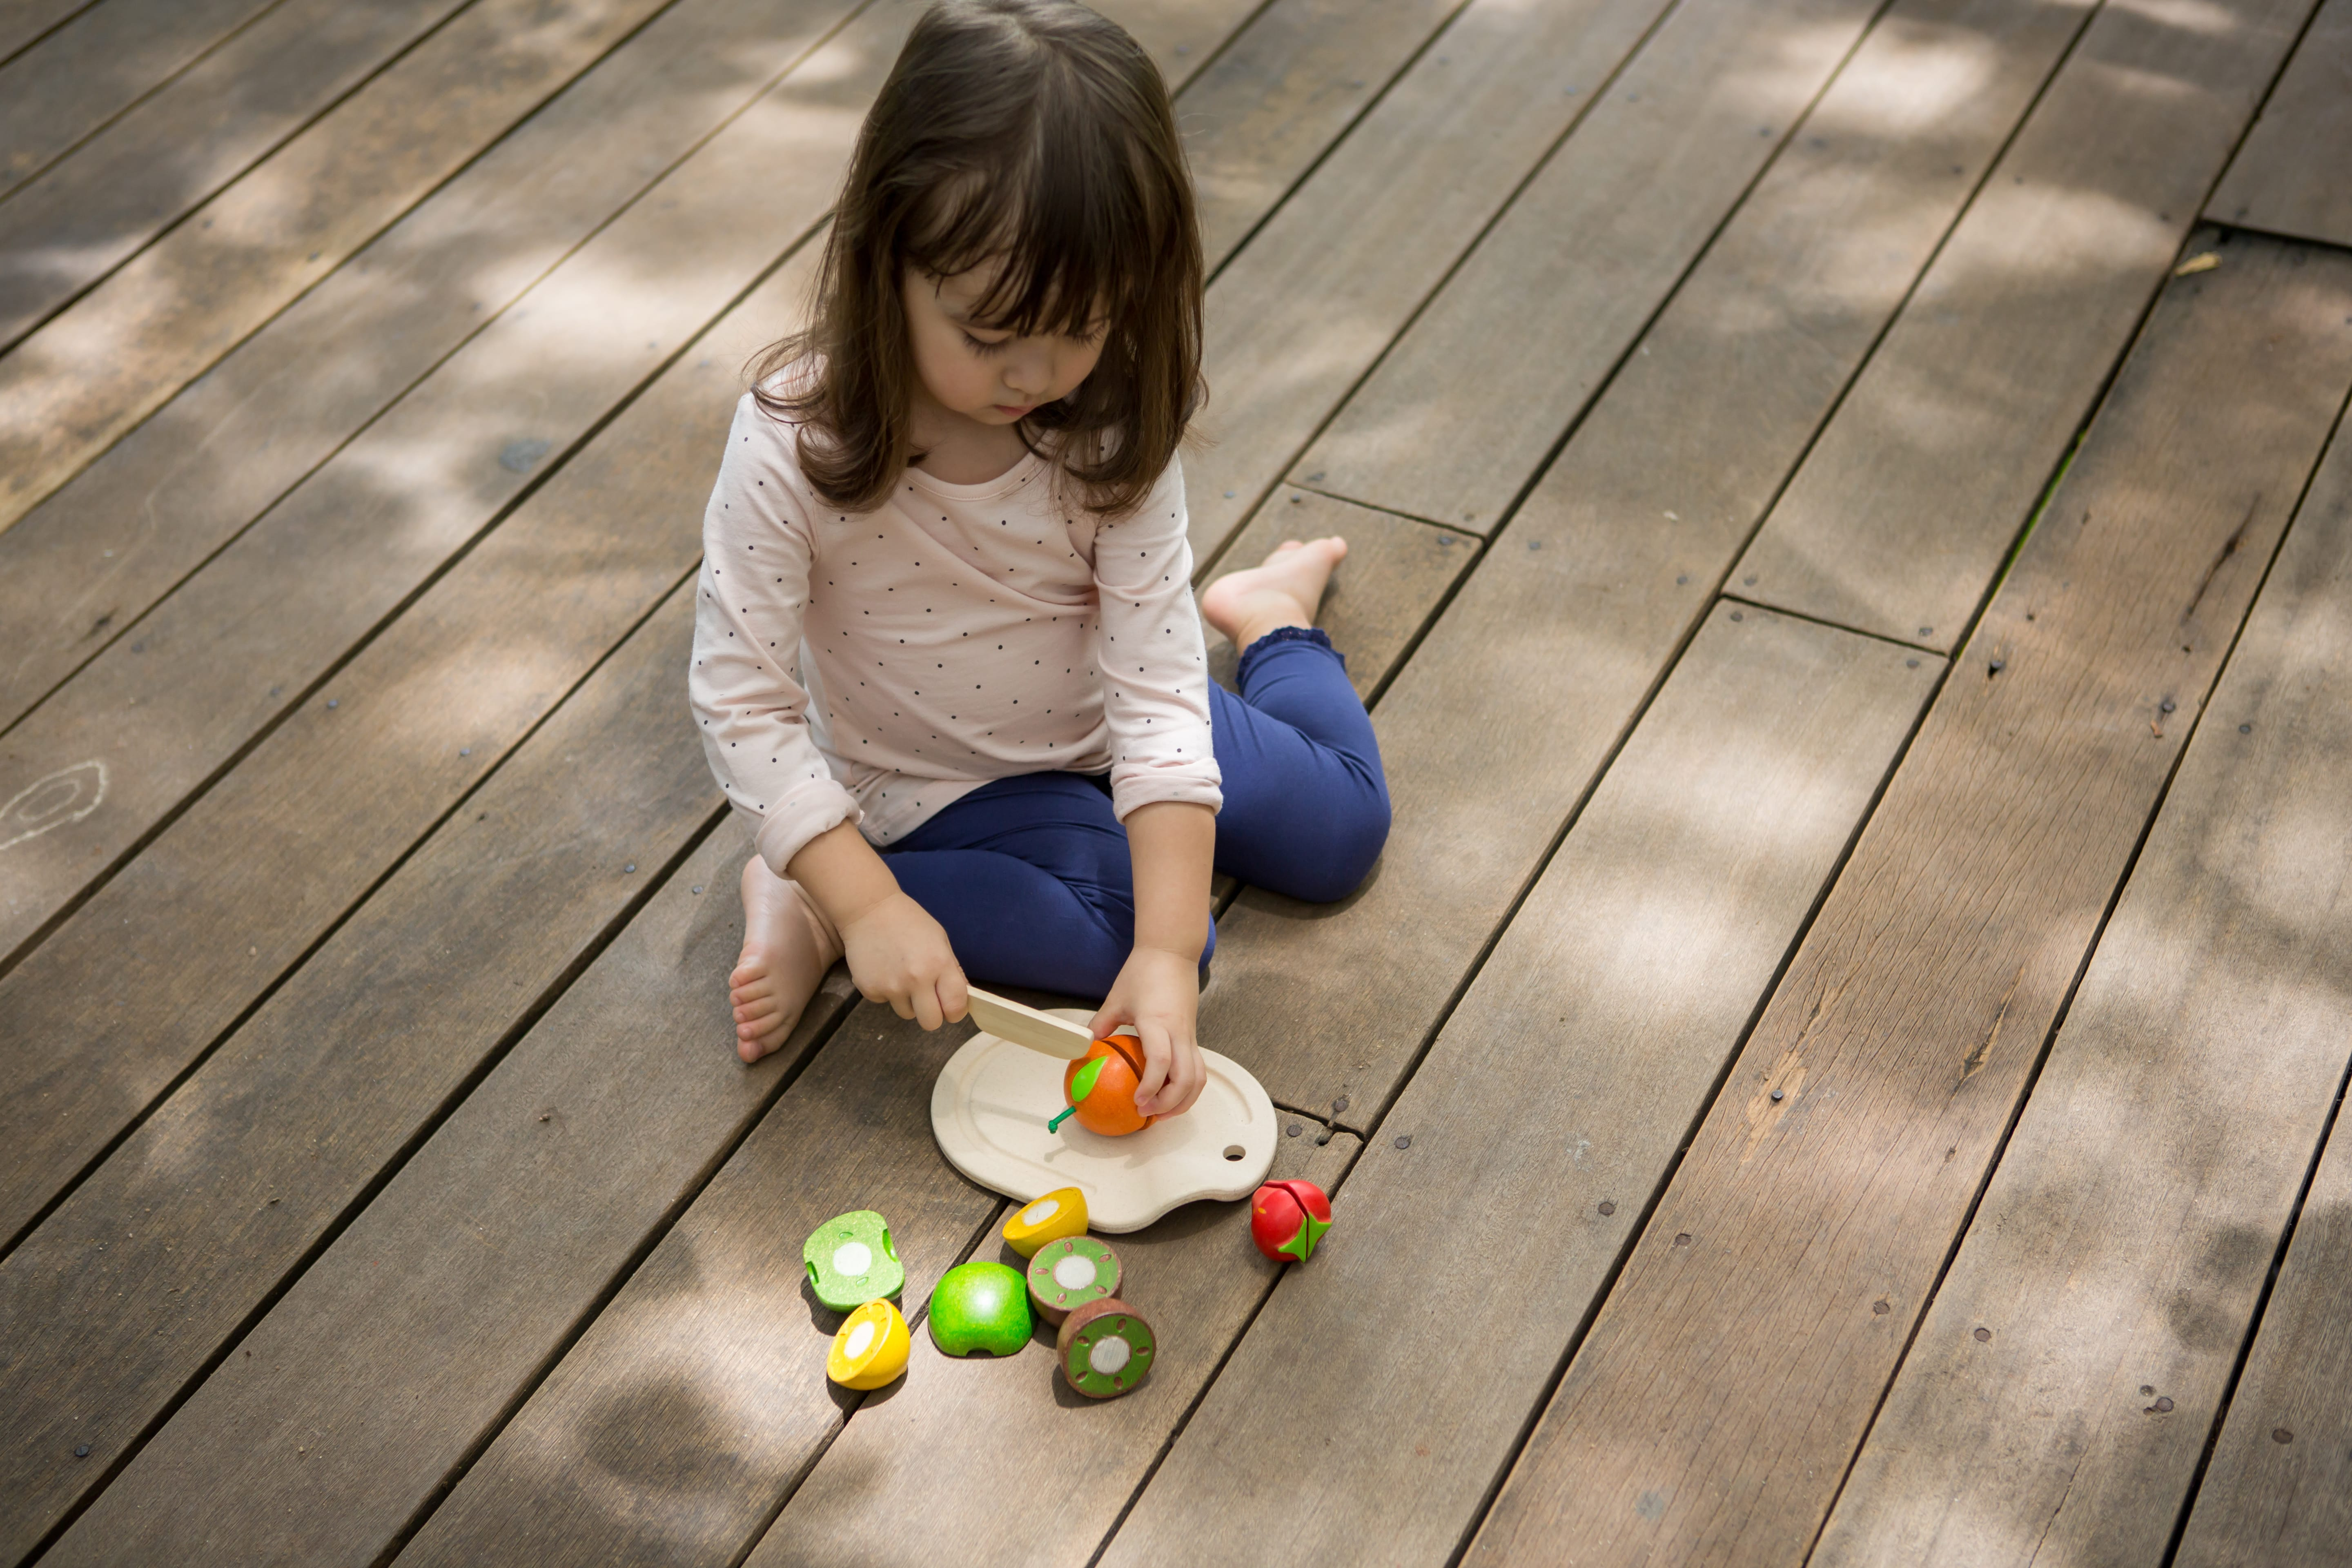 3600_PlanToys_ASSORTED_FRUIT_SET_Pretend_Play_Coordination_Concentration_Imagination_Language_and_Communications_Social_Fine_Motor_18m_Wooden_toys_Education_toys_Safety_Toys_Non-toxic_0.jpg